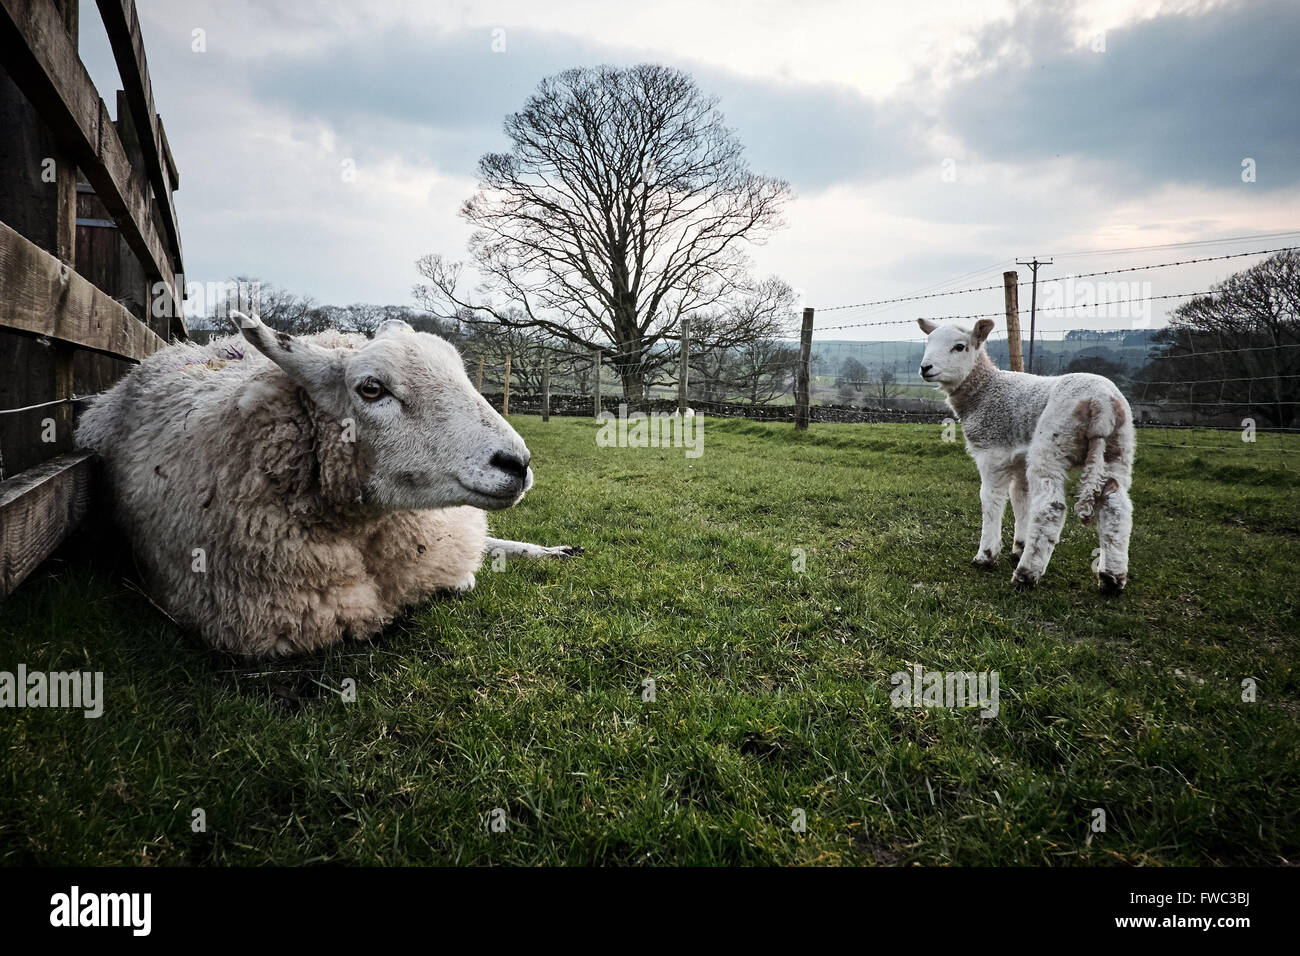 A ewe, lying down, and it's lamb, standing, in a field. - Stock Image